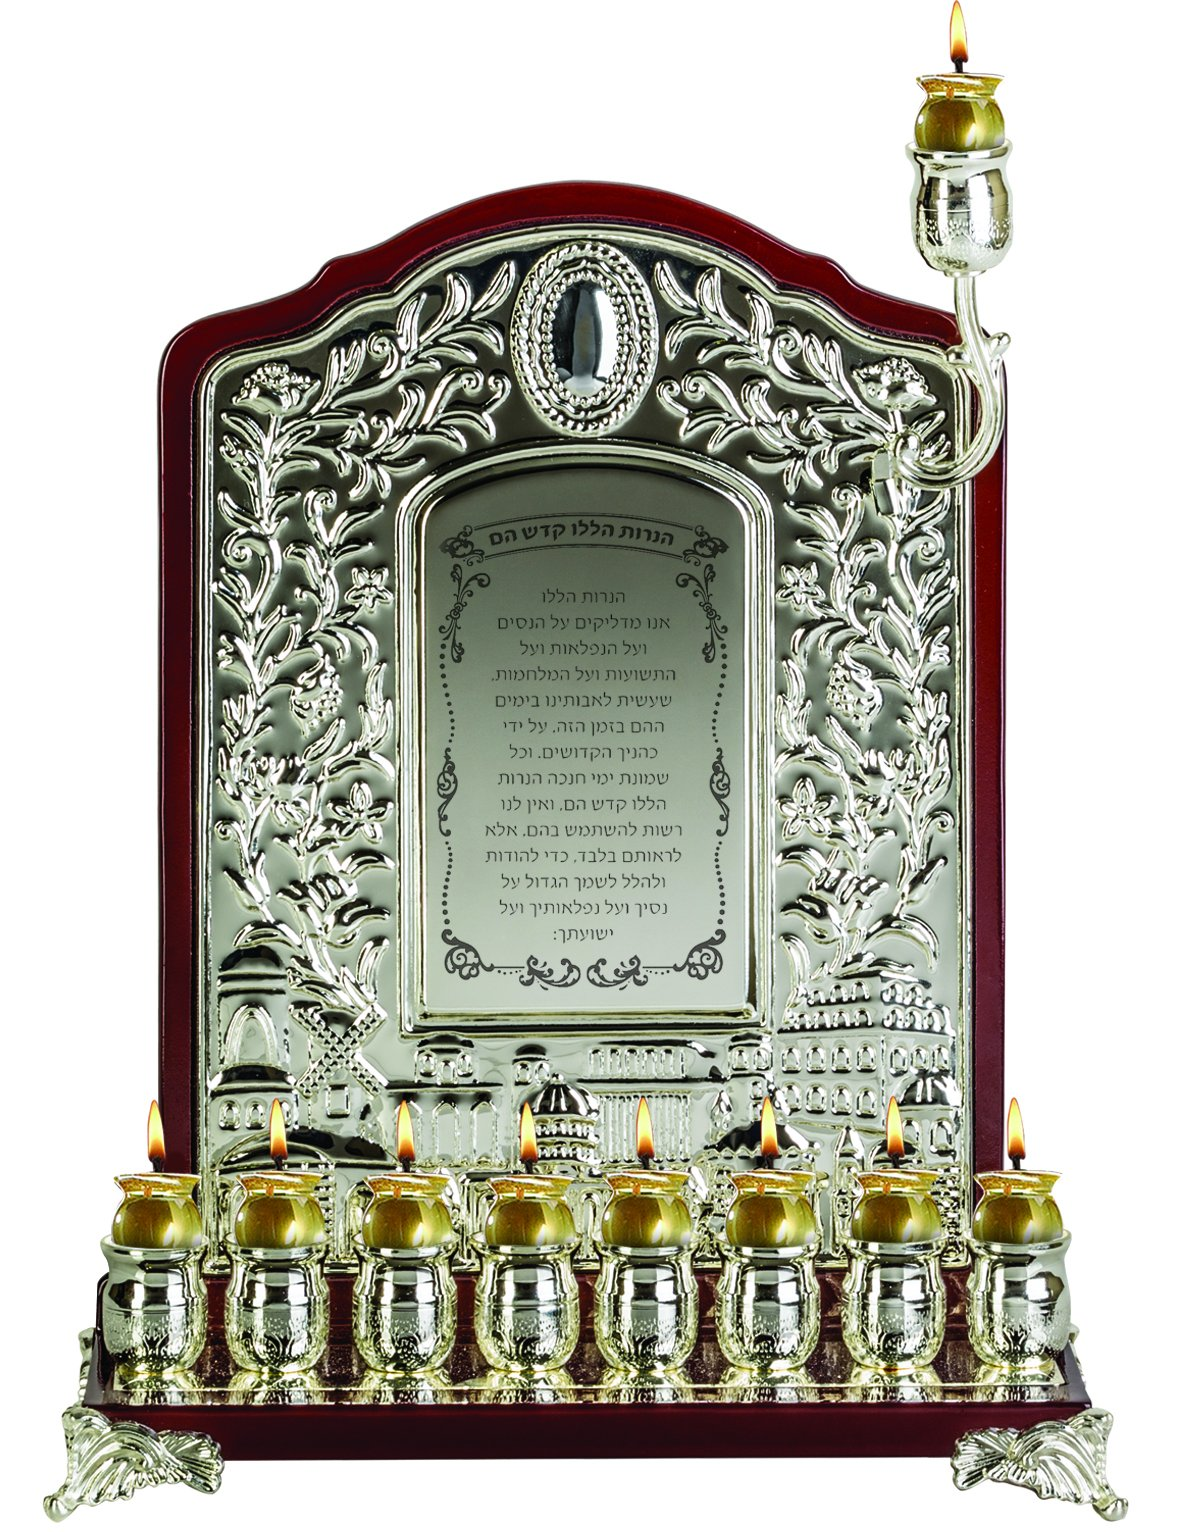 Ner Mitzvah Silver Plated Oil Wall Menorah Wood Accents - Fits Standard Chanukah Oil Cups Large Candles - Jerusalem Design Hanerot Hallalu - 14'' High